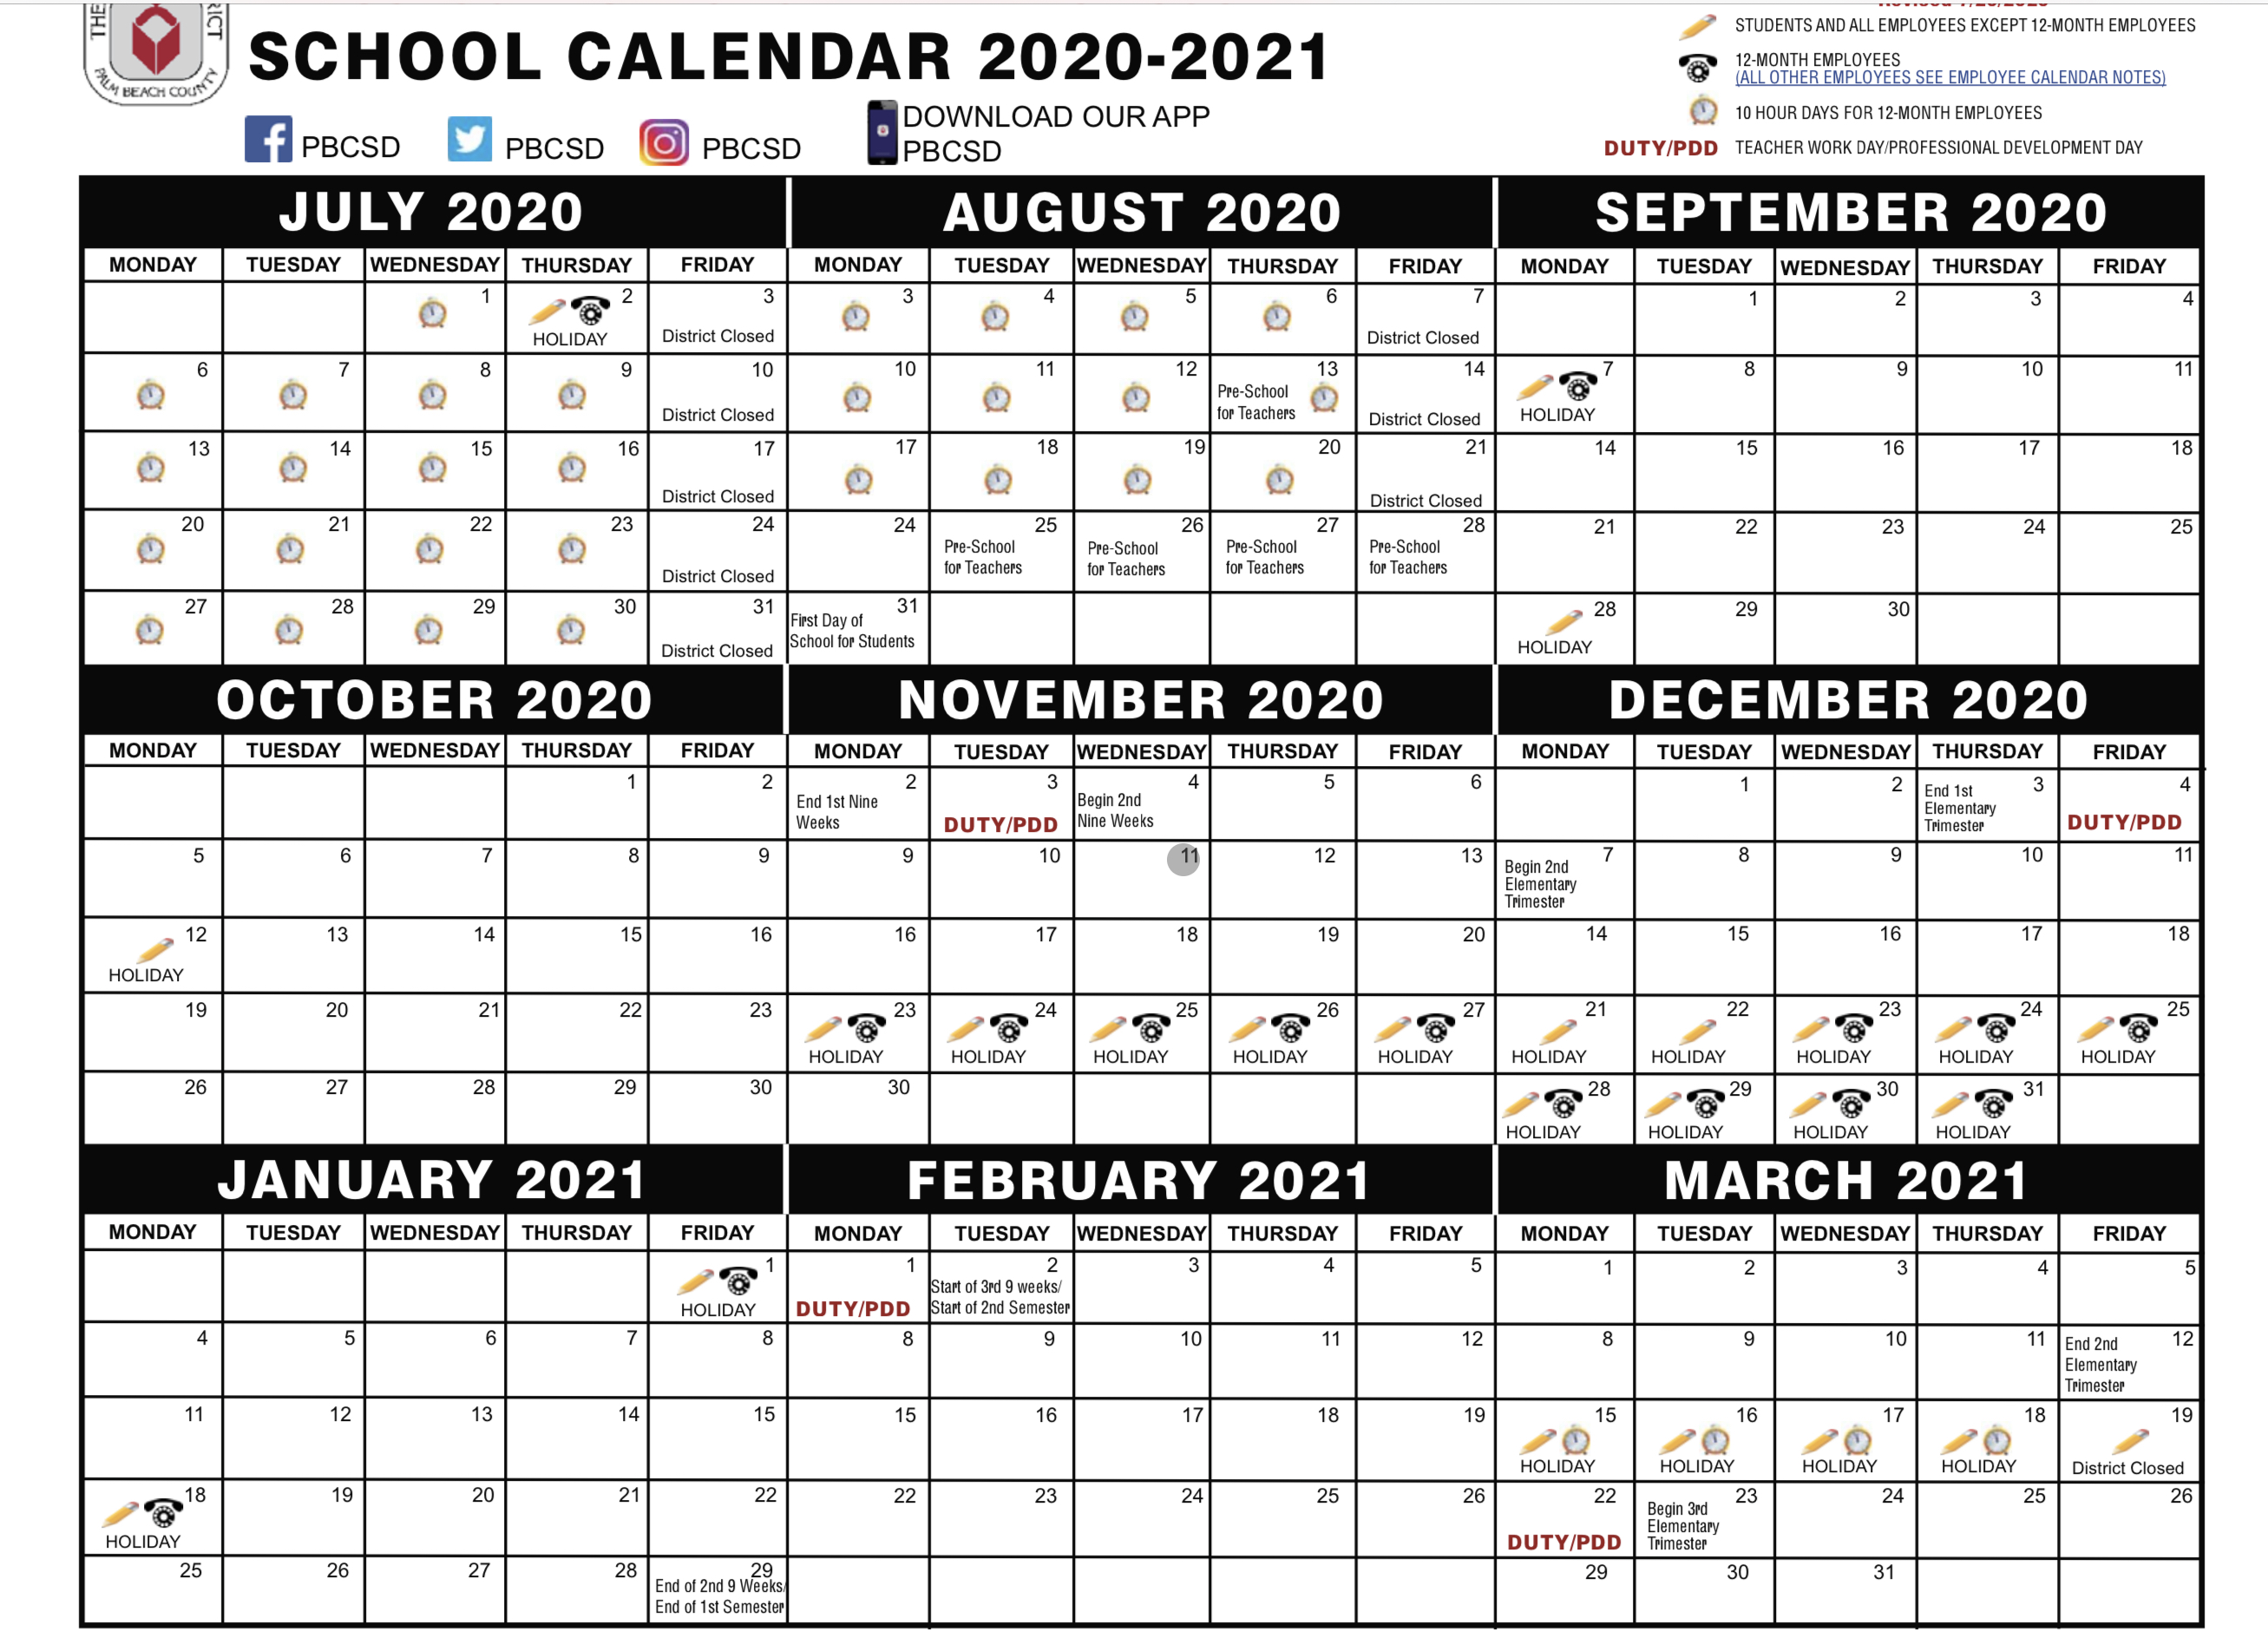 palm beach school calendar 2020-20201